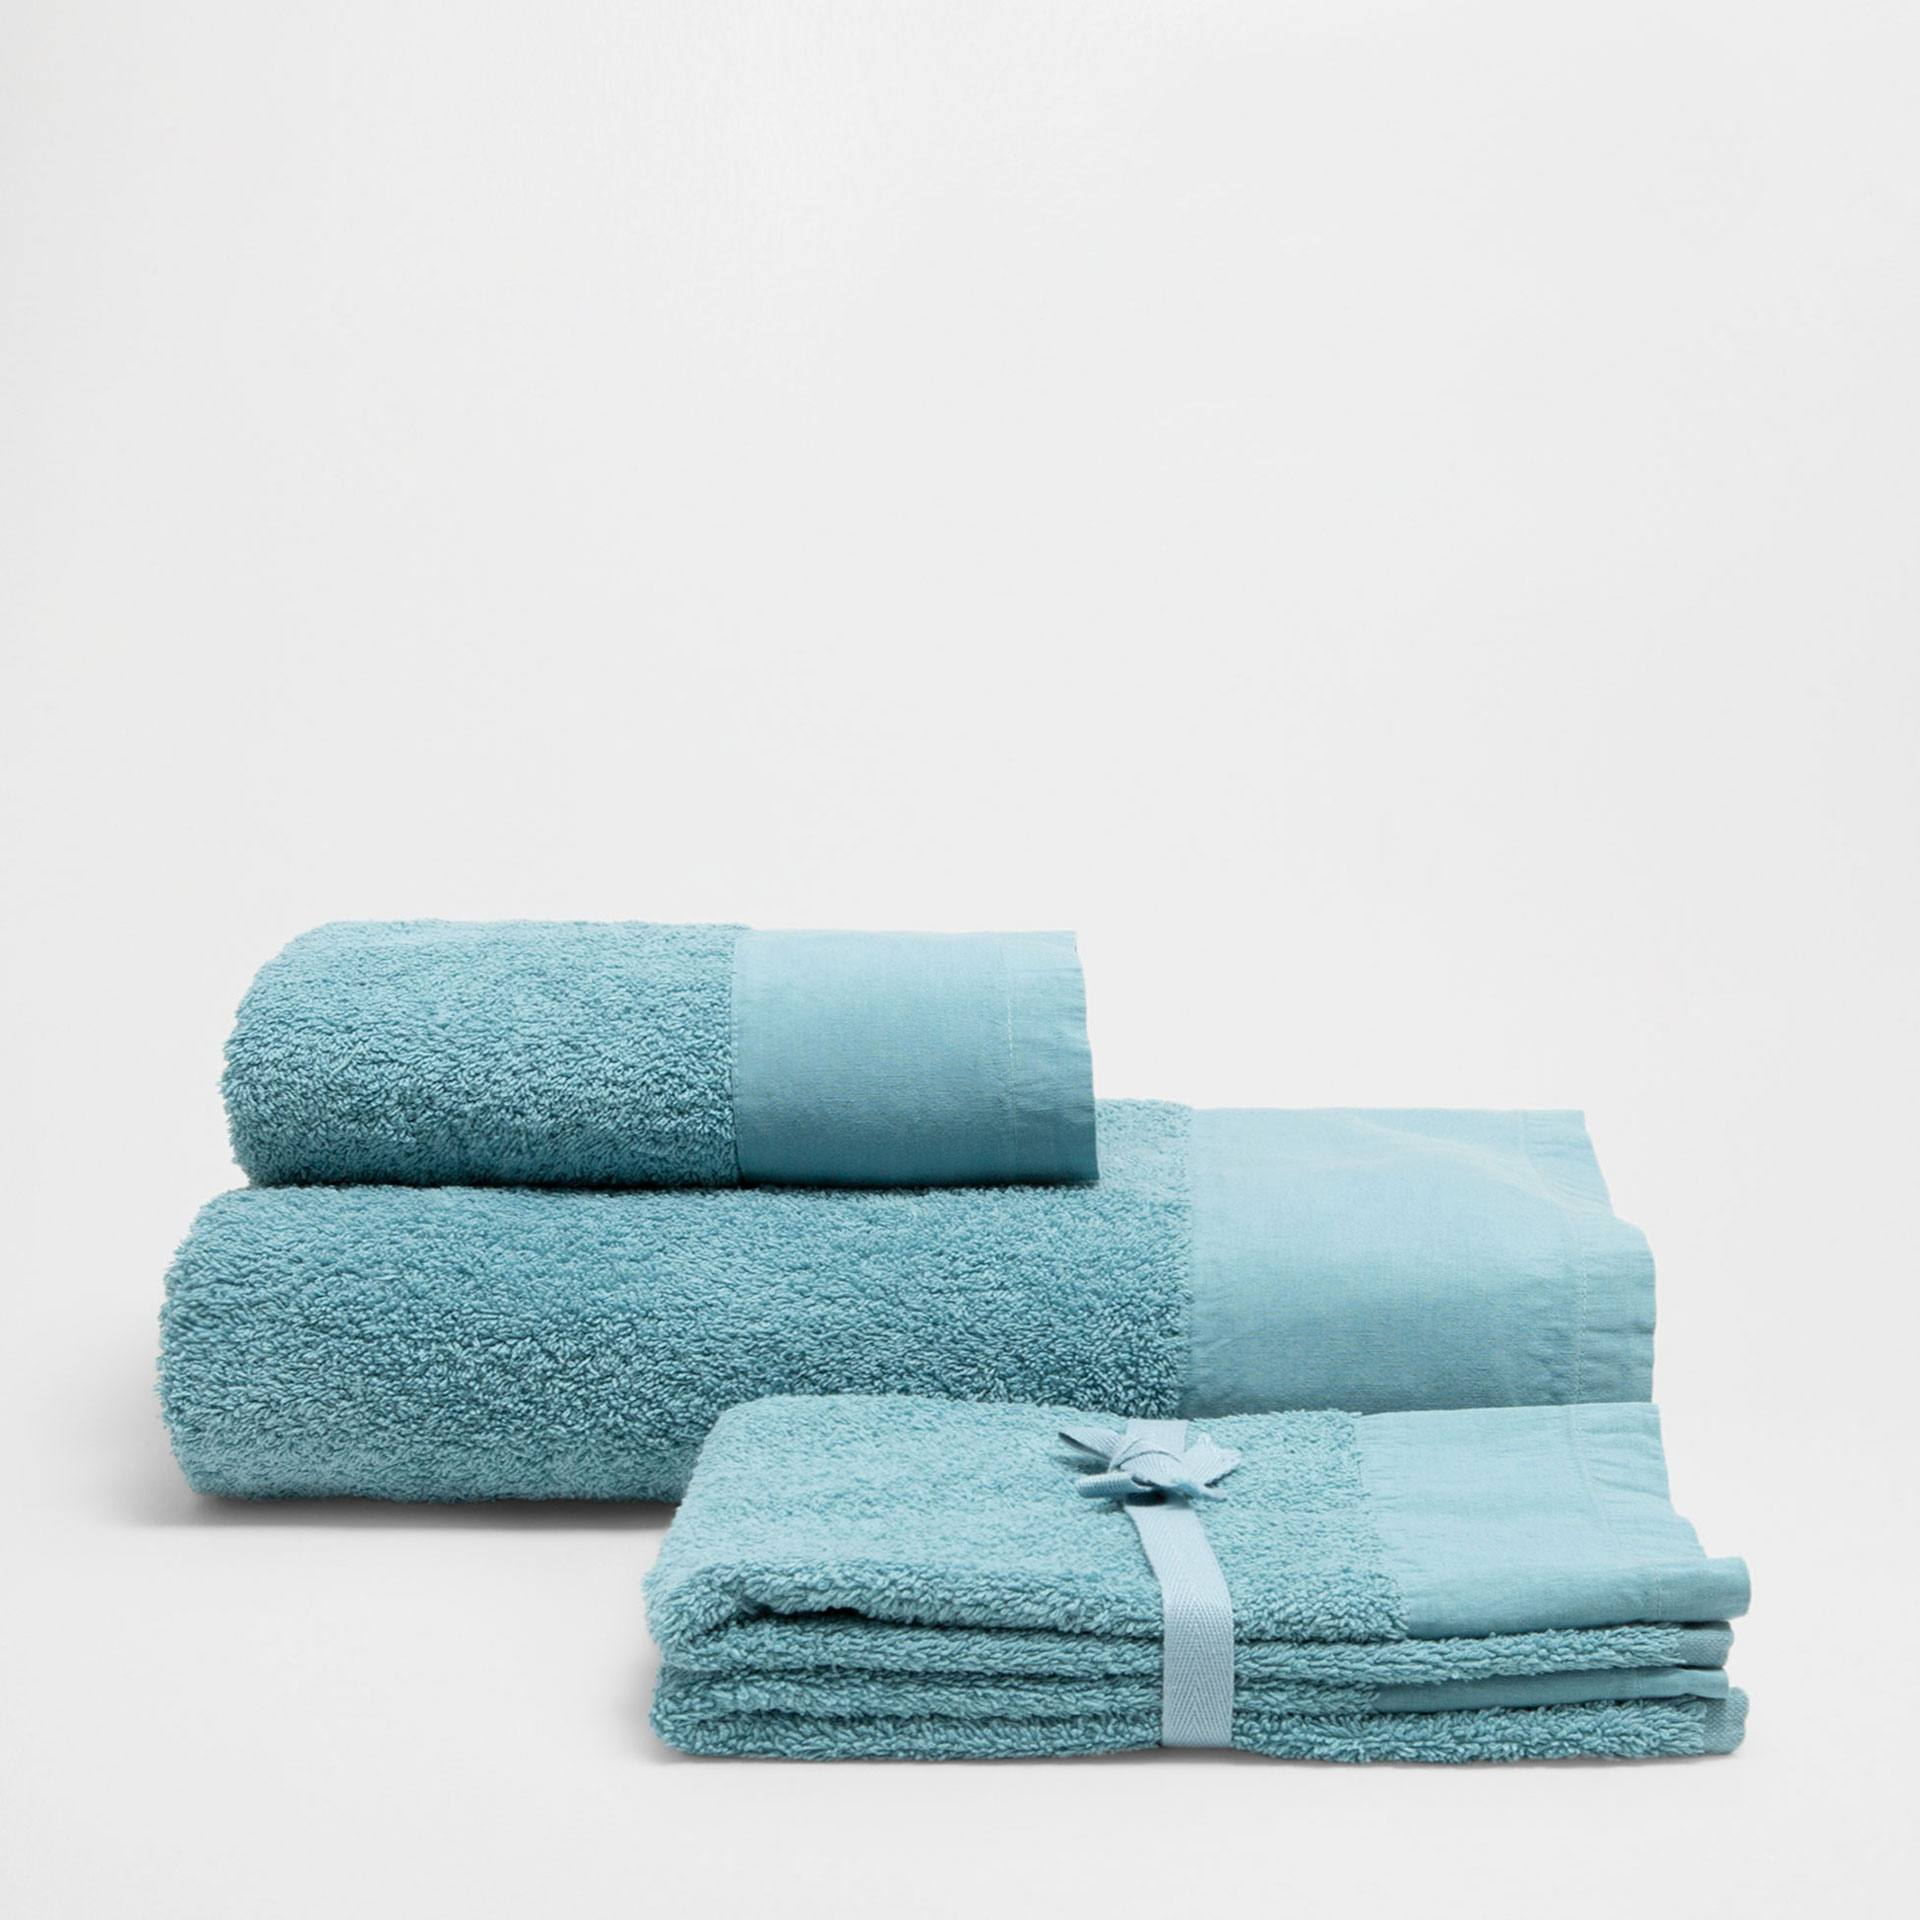 Light blue towels